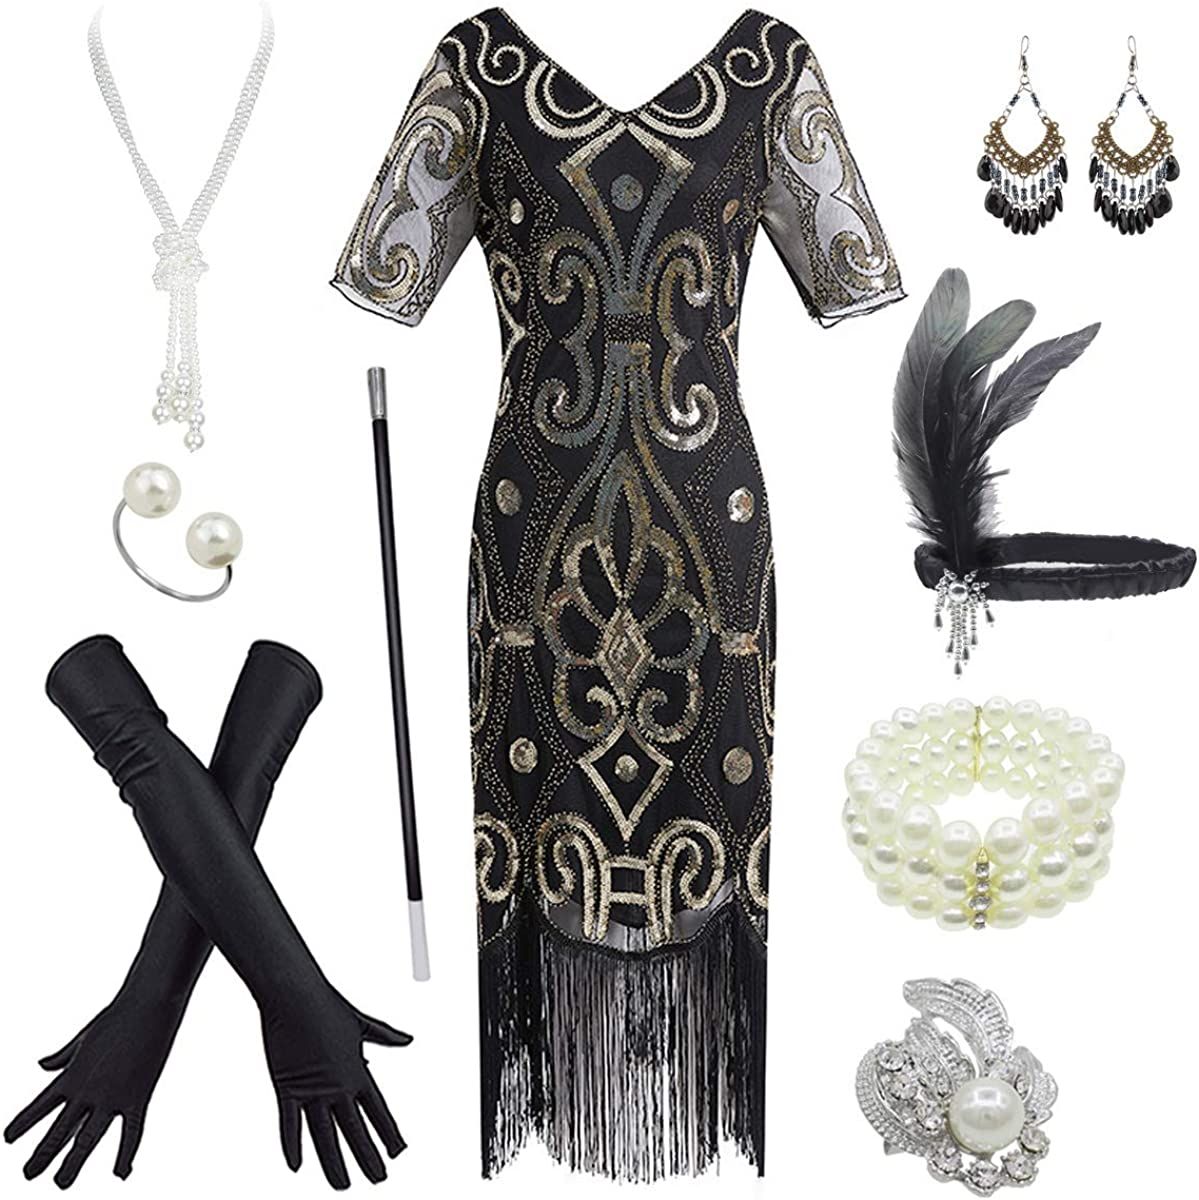 Womens 1920s Gatsby Inspired Sequin Beads Long Fringe Flapper Dress w//Accessories Set